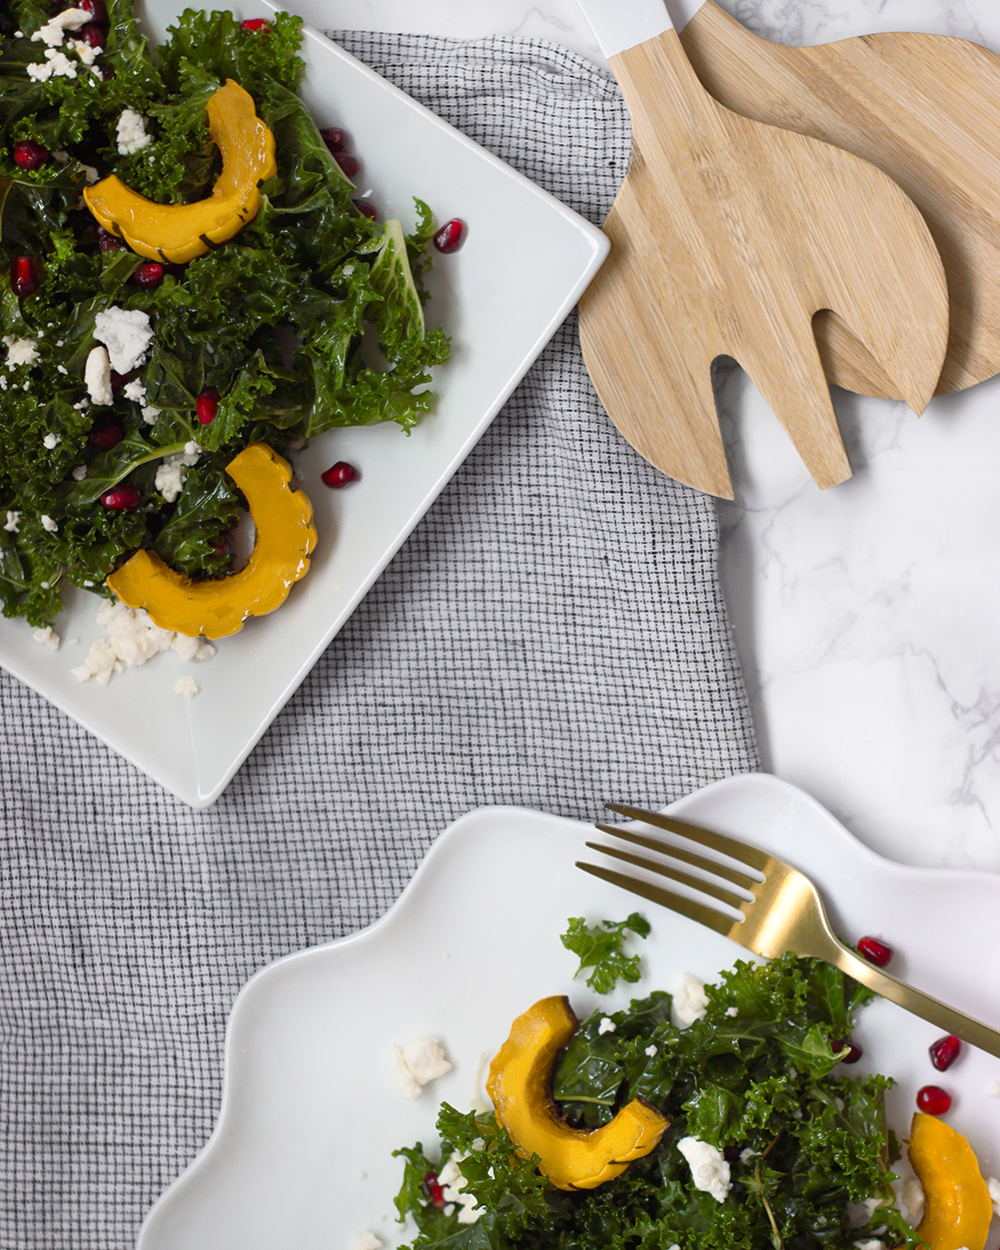 livvyland-healthy-clean-eating-vegetarian-recipe-Kale-Salad-Delicata-Squash-jessica-lee-3